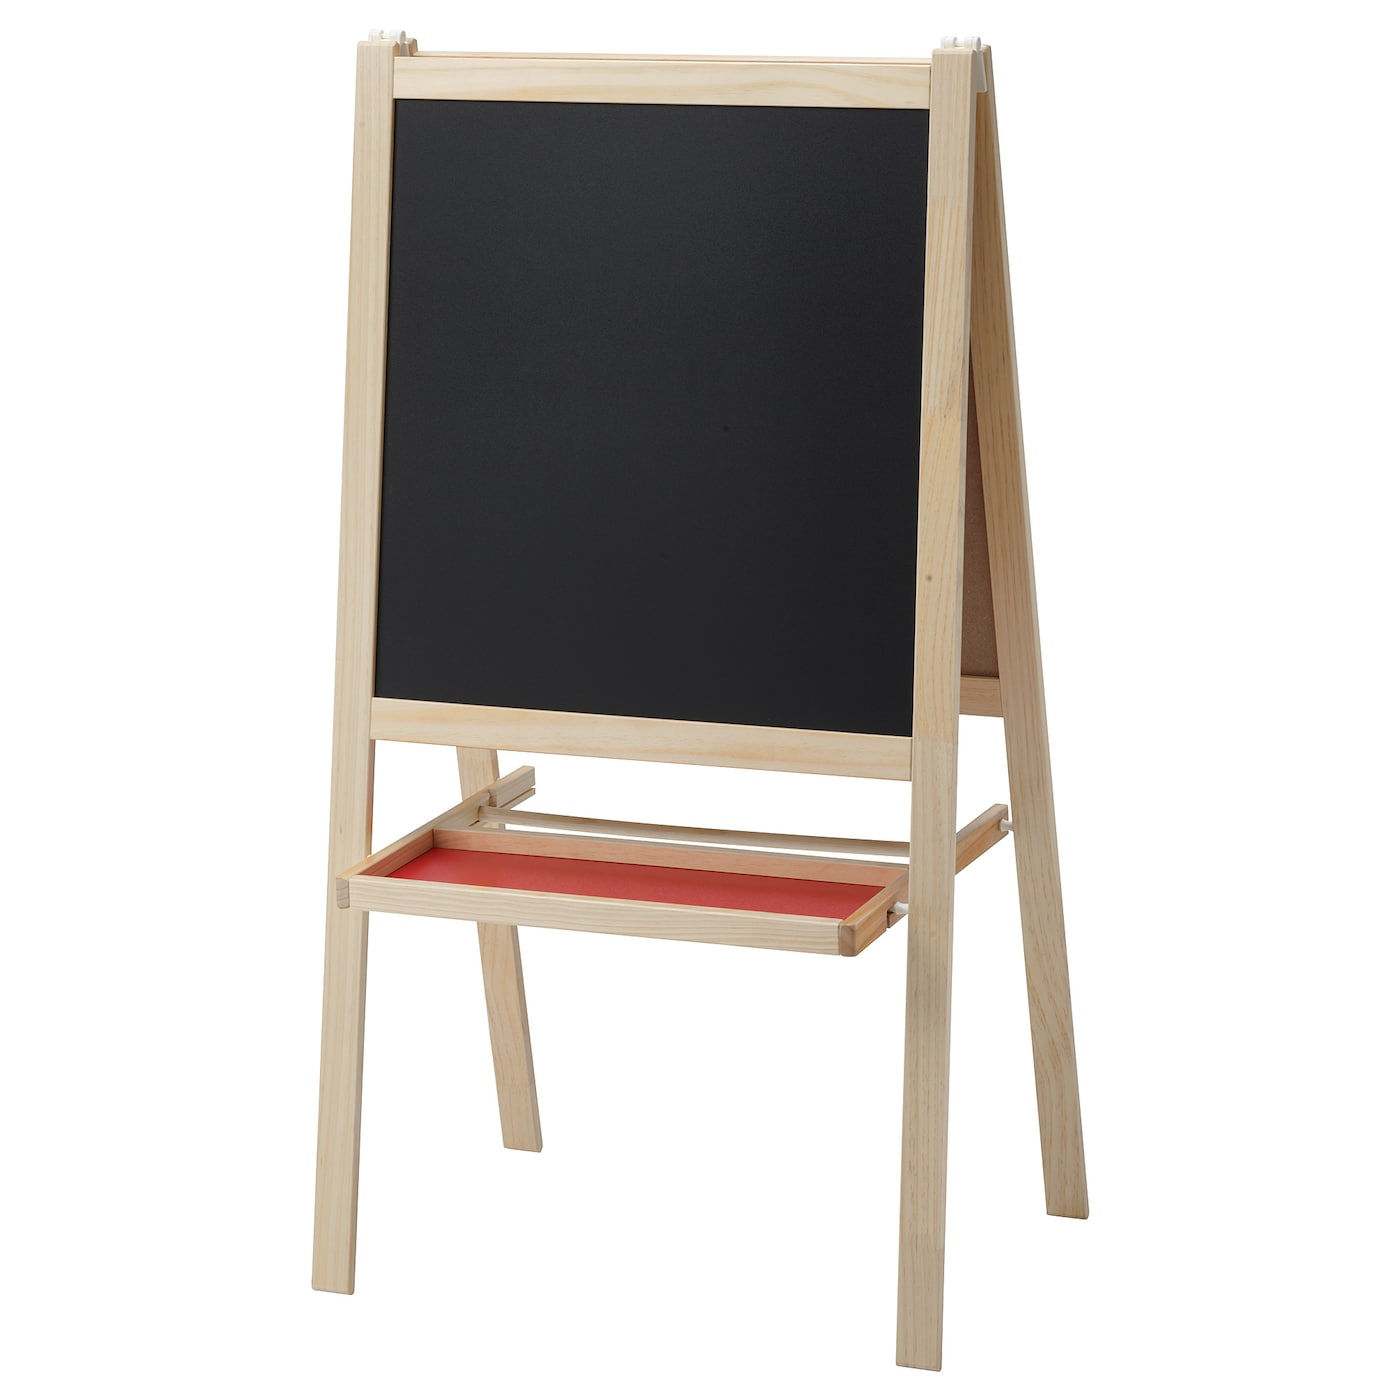 Gray Wooden Base Stand Set of 2 Tabletop Double Sided Chalkboard Display Sign